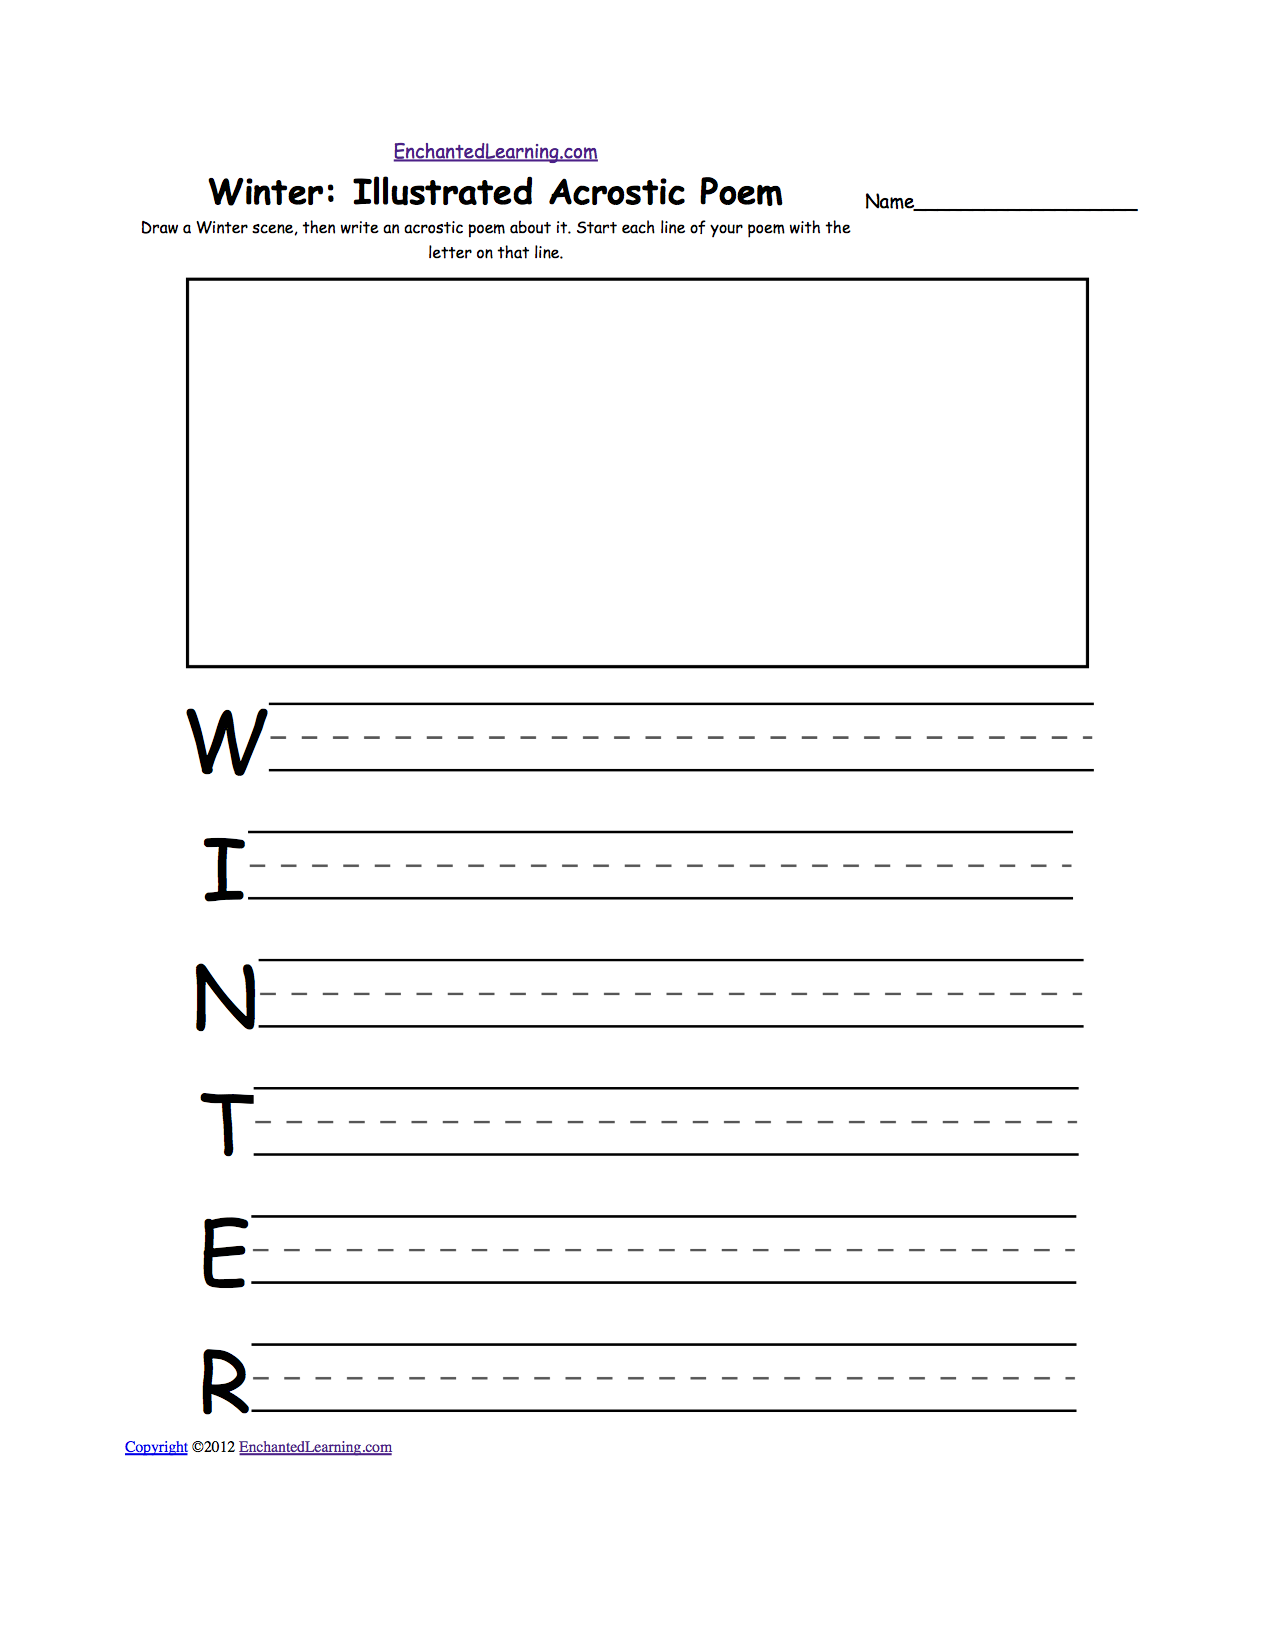 writing worksheets winter k theme page at com draw a winter scene then write an acrostic poem about it start each line of your poem the letter on that line